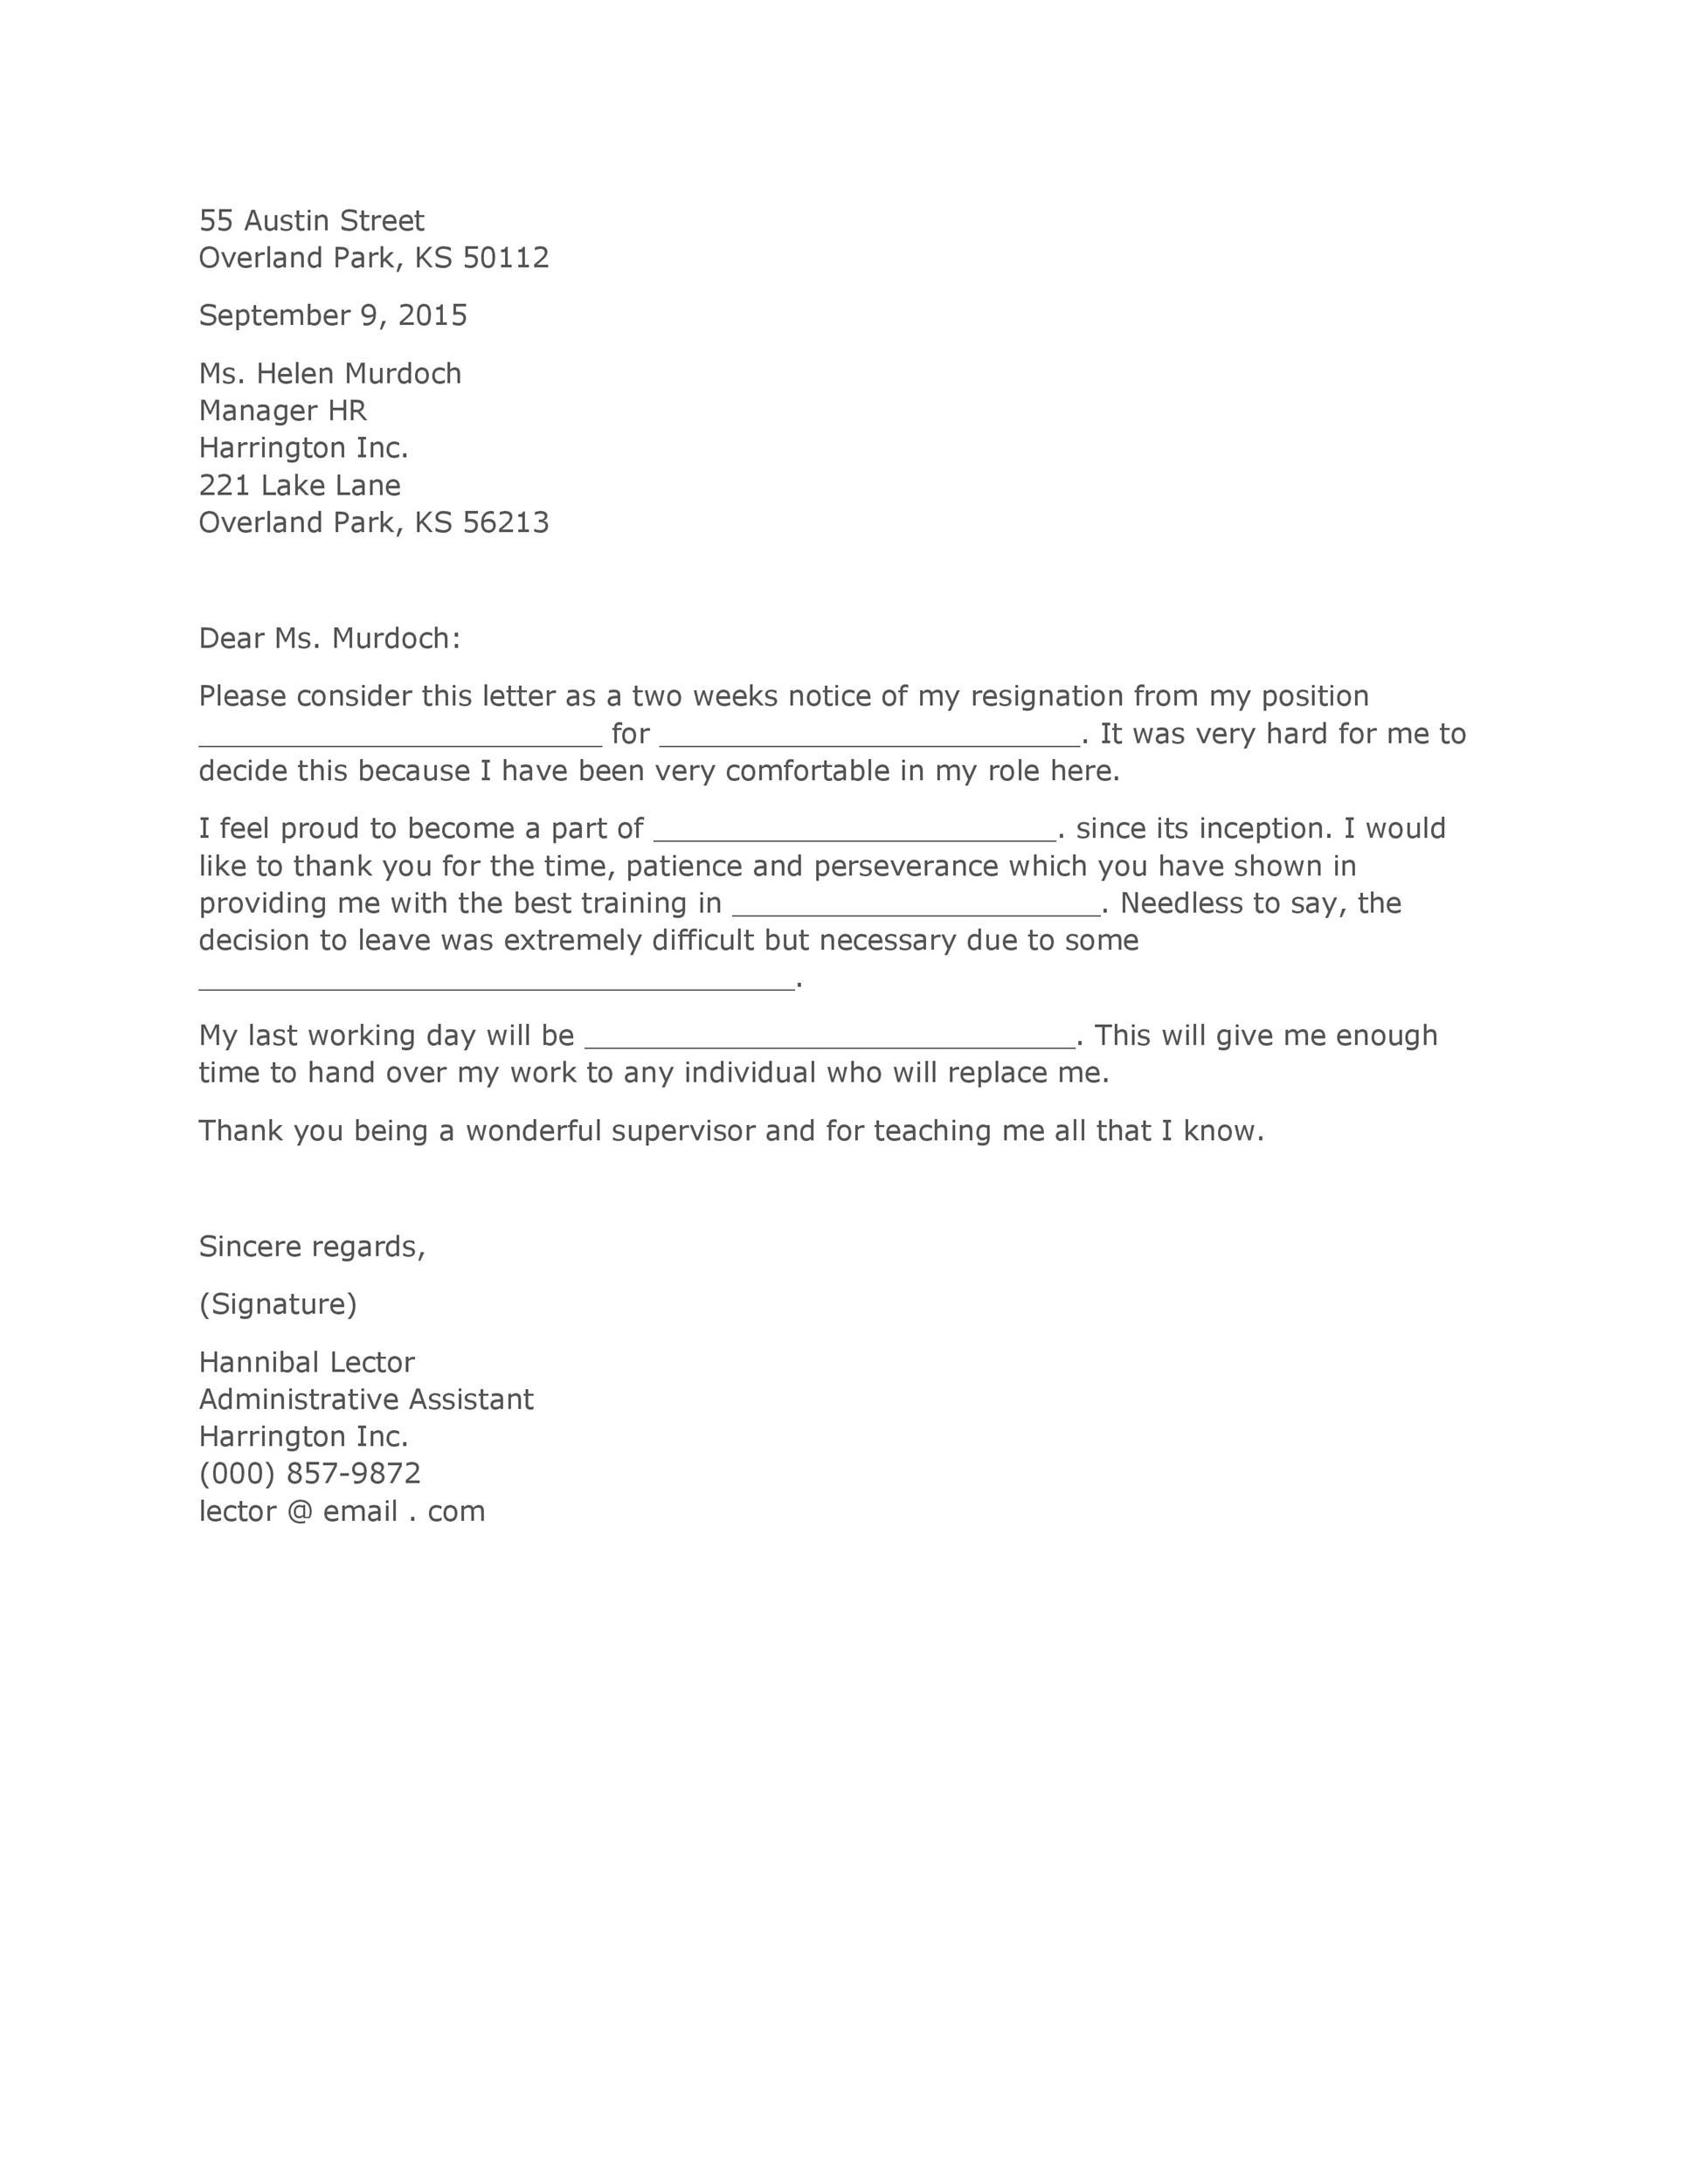 How to Write a Resignation Letter (Examples + Template ...